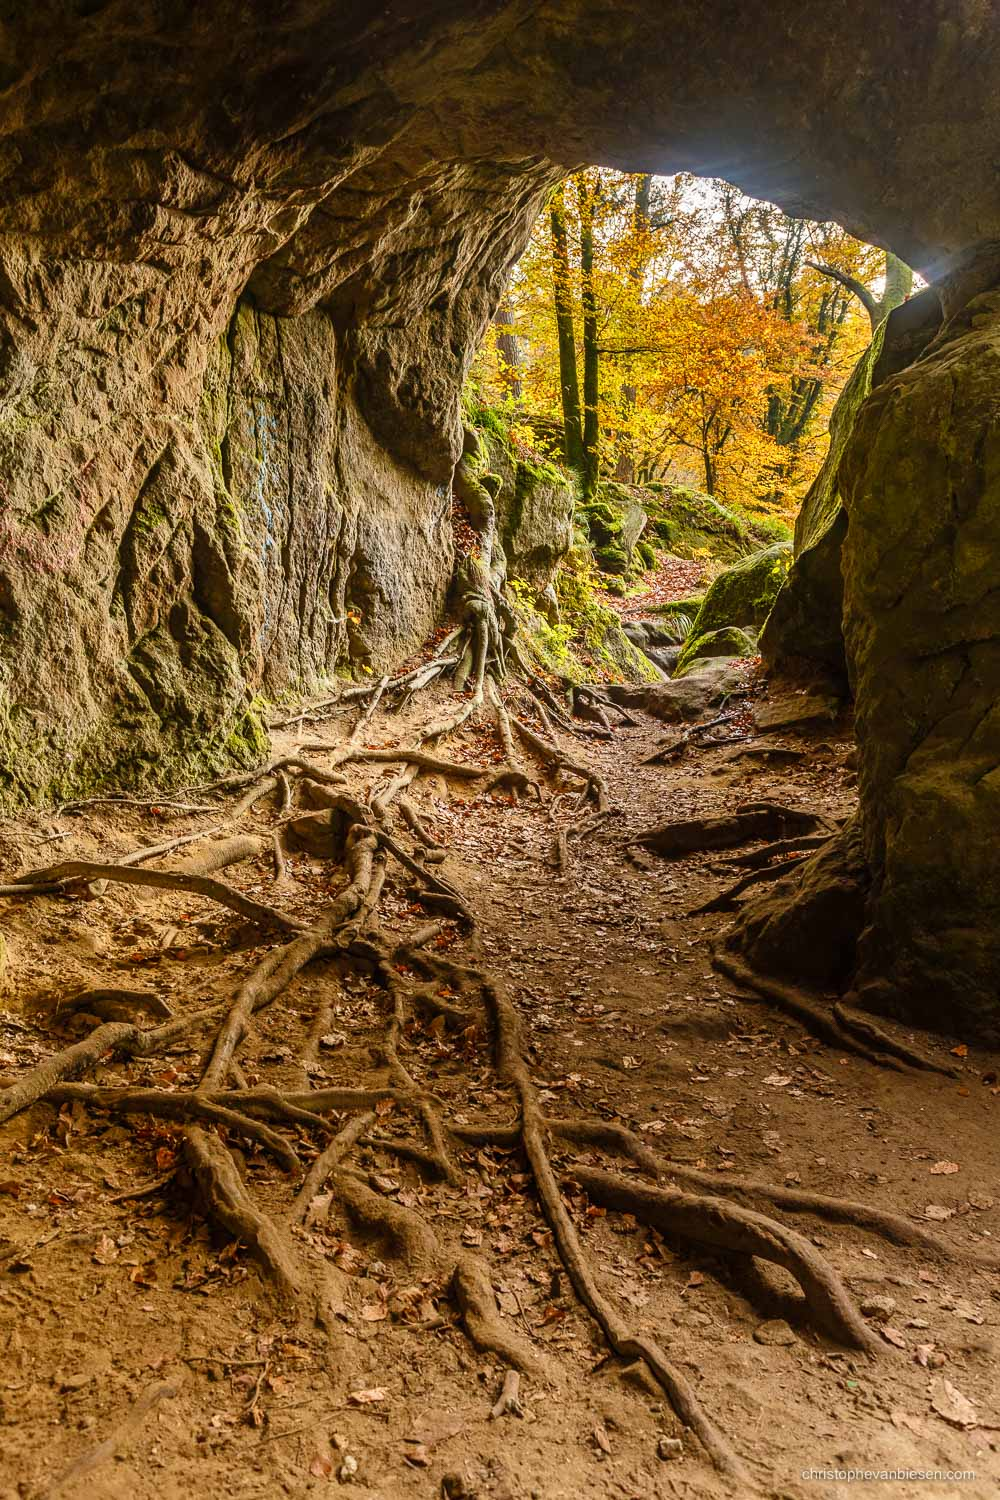 Visit the Mullerthal - Luxembourg - Autumn in Luxembourg's forests in the Mullerthal region near Berdorf - Deep Roots